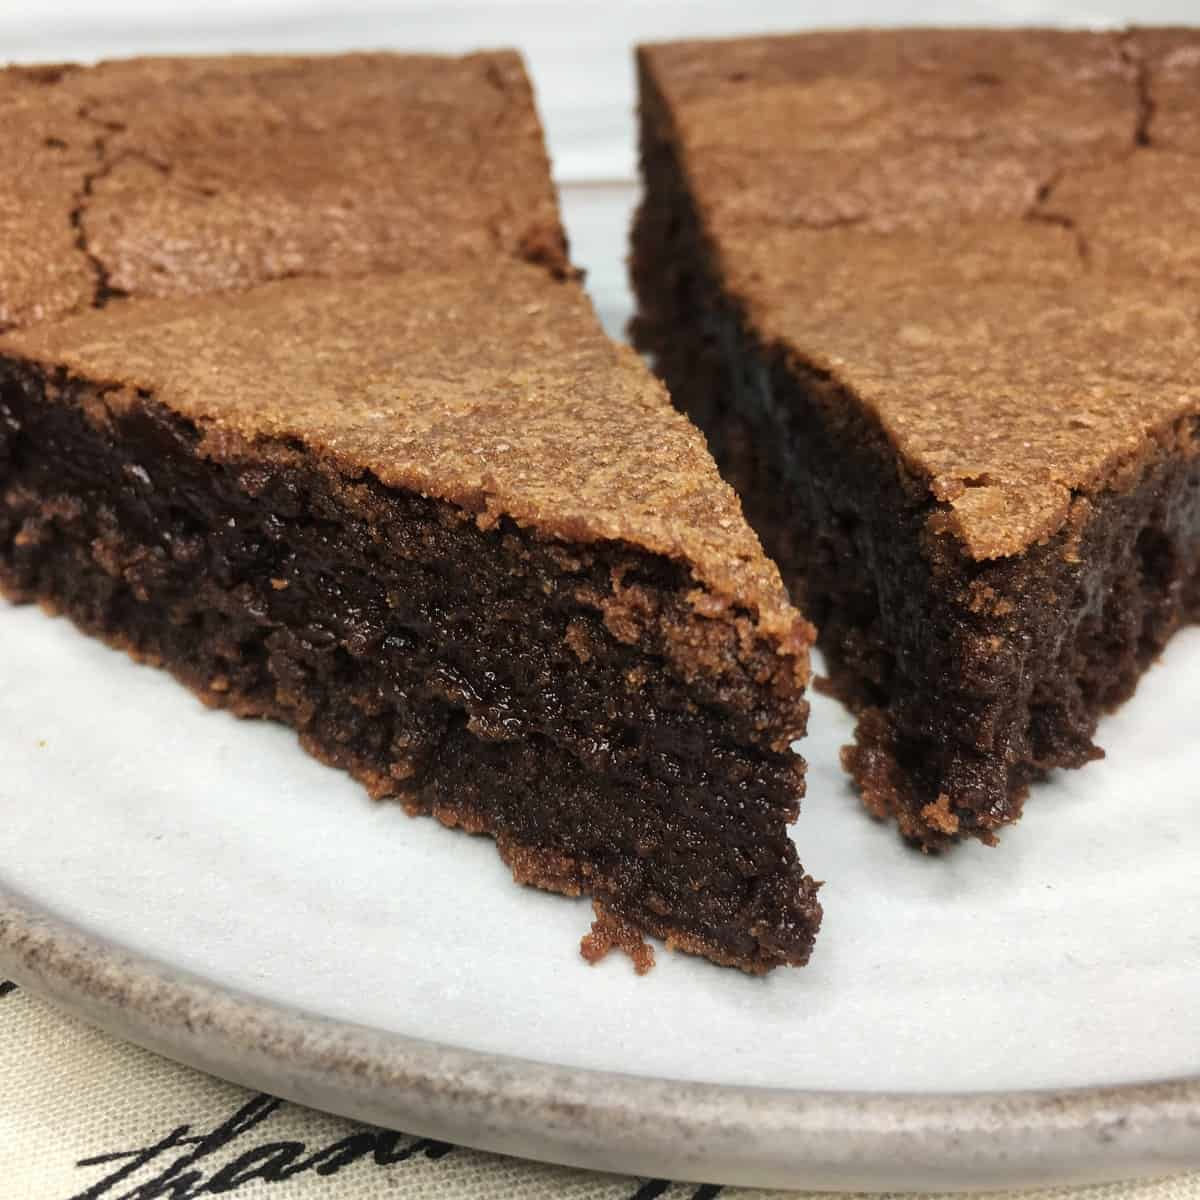 Two slices of Suzy French chocolate cake on a grey plate